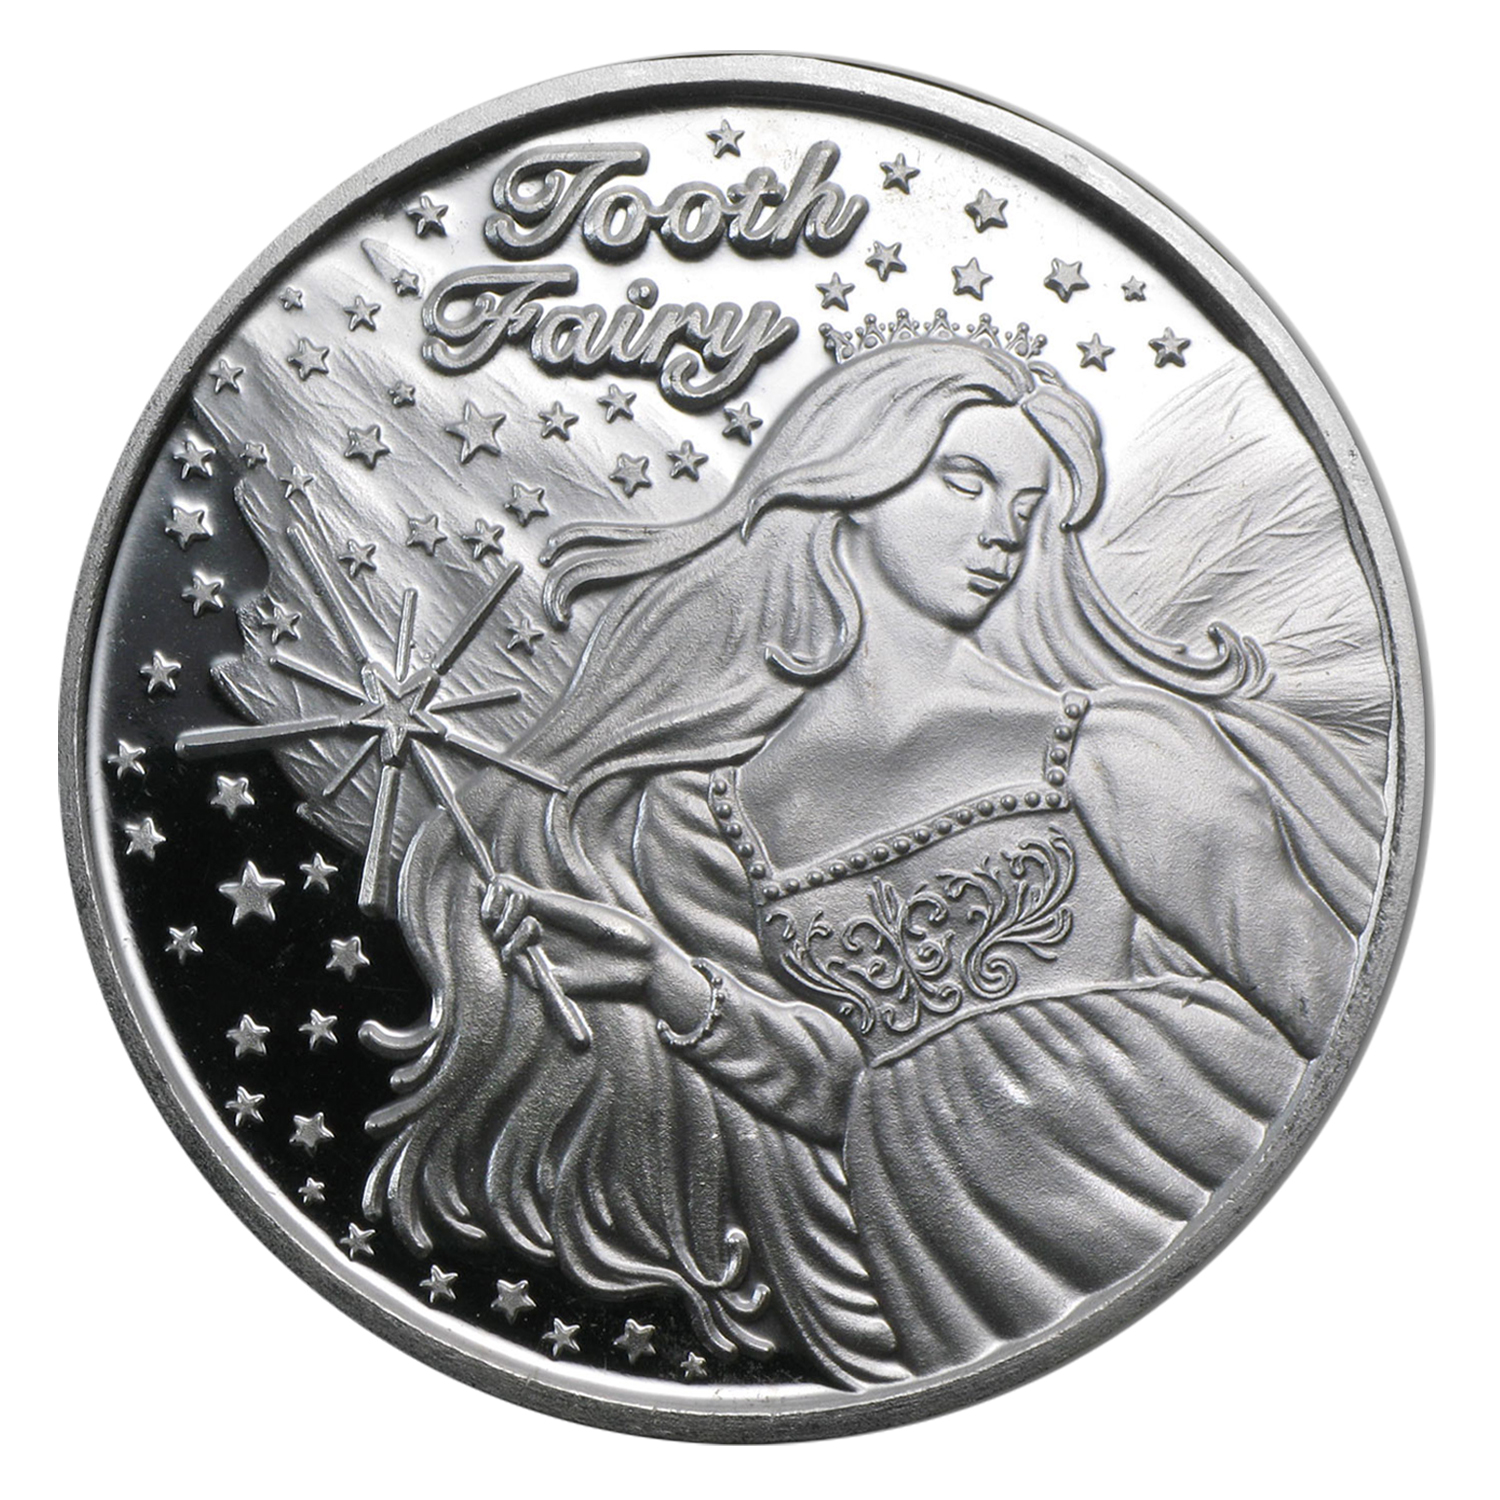 1 oz Silver Round - Tooth Fairy (Box & Capsule)